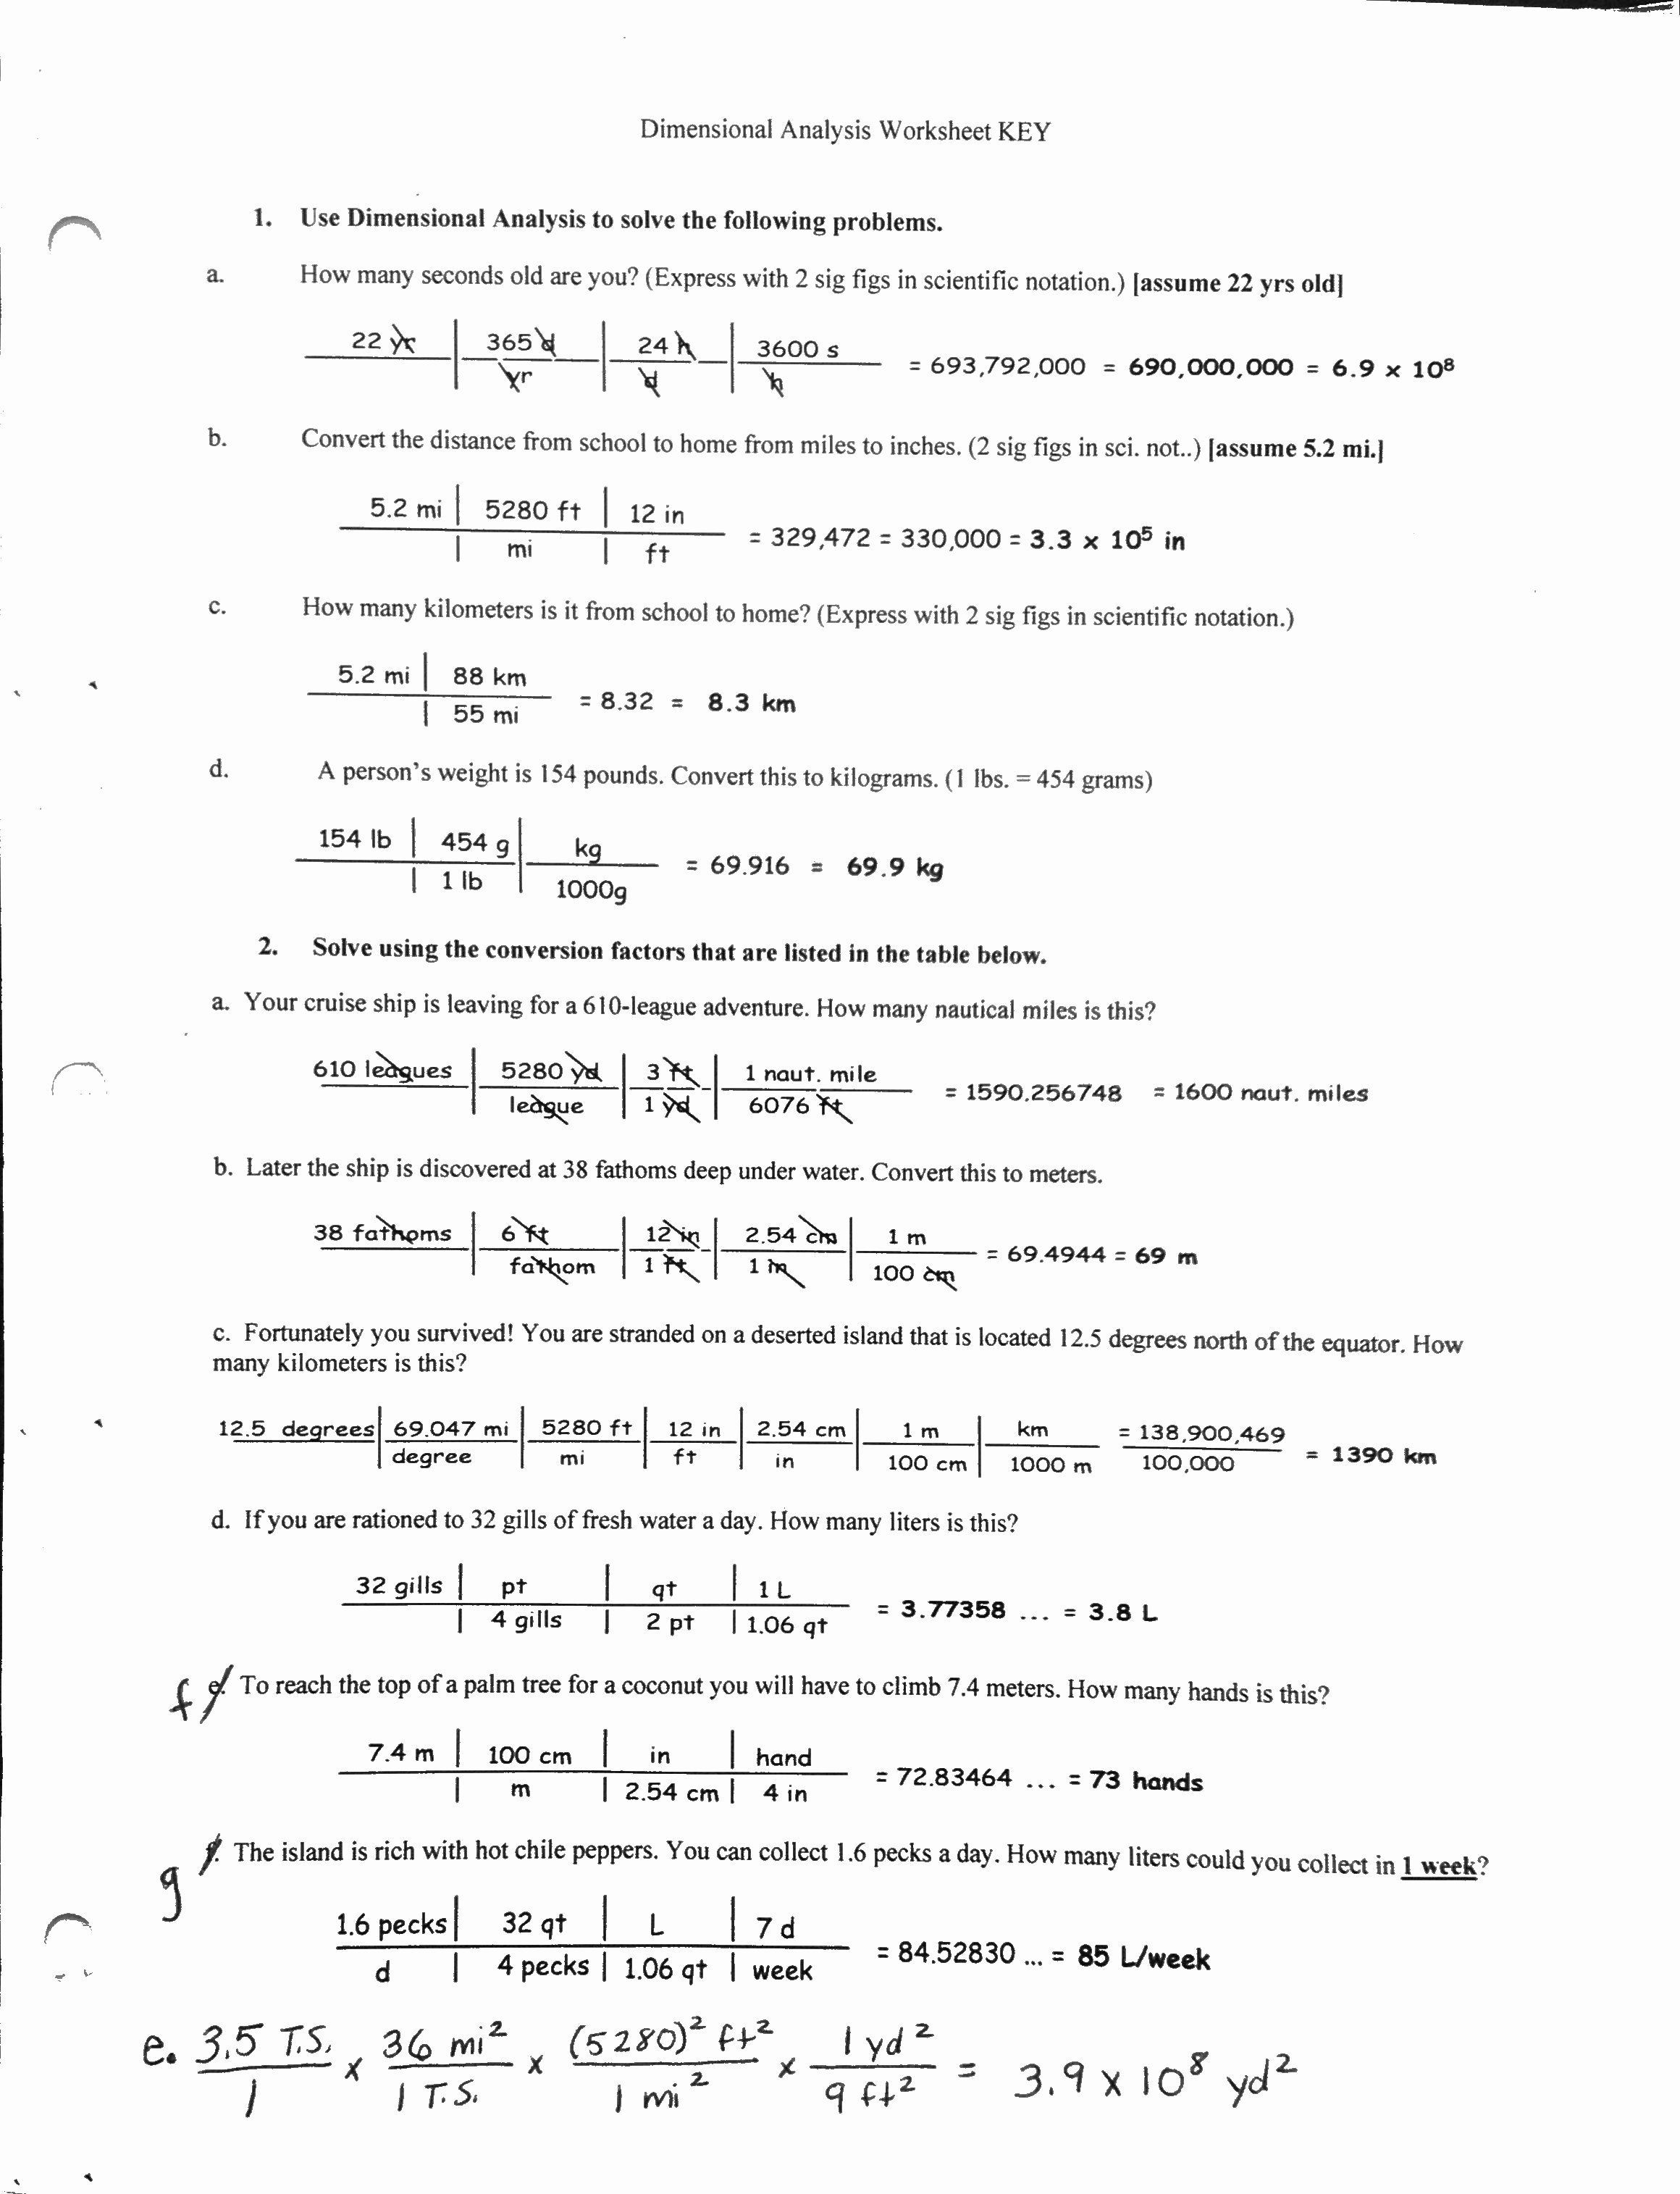 Dimensionalysis Worksheet Answers Chemistry New